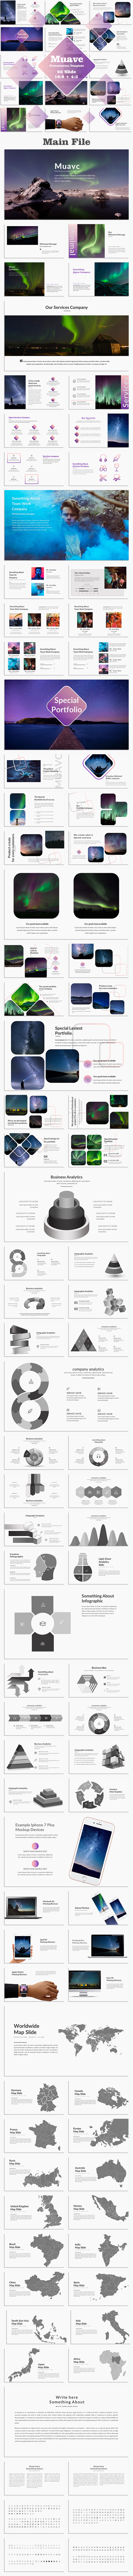 Muavc Minimal PowerPoint Template - Creative PowerPoint Templates